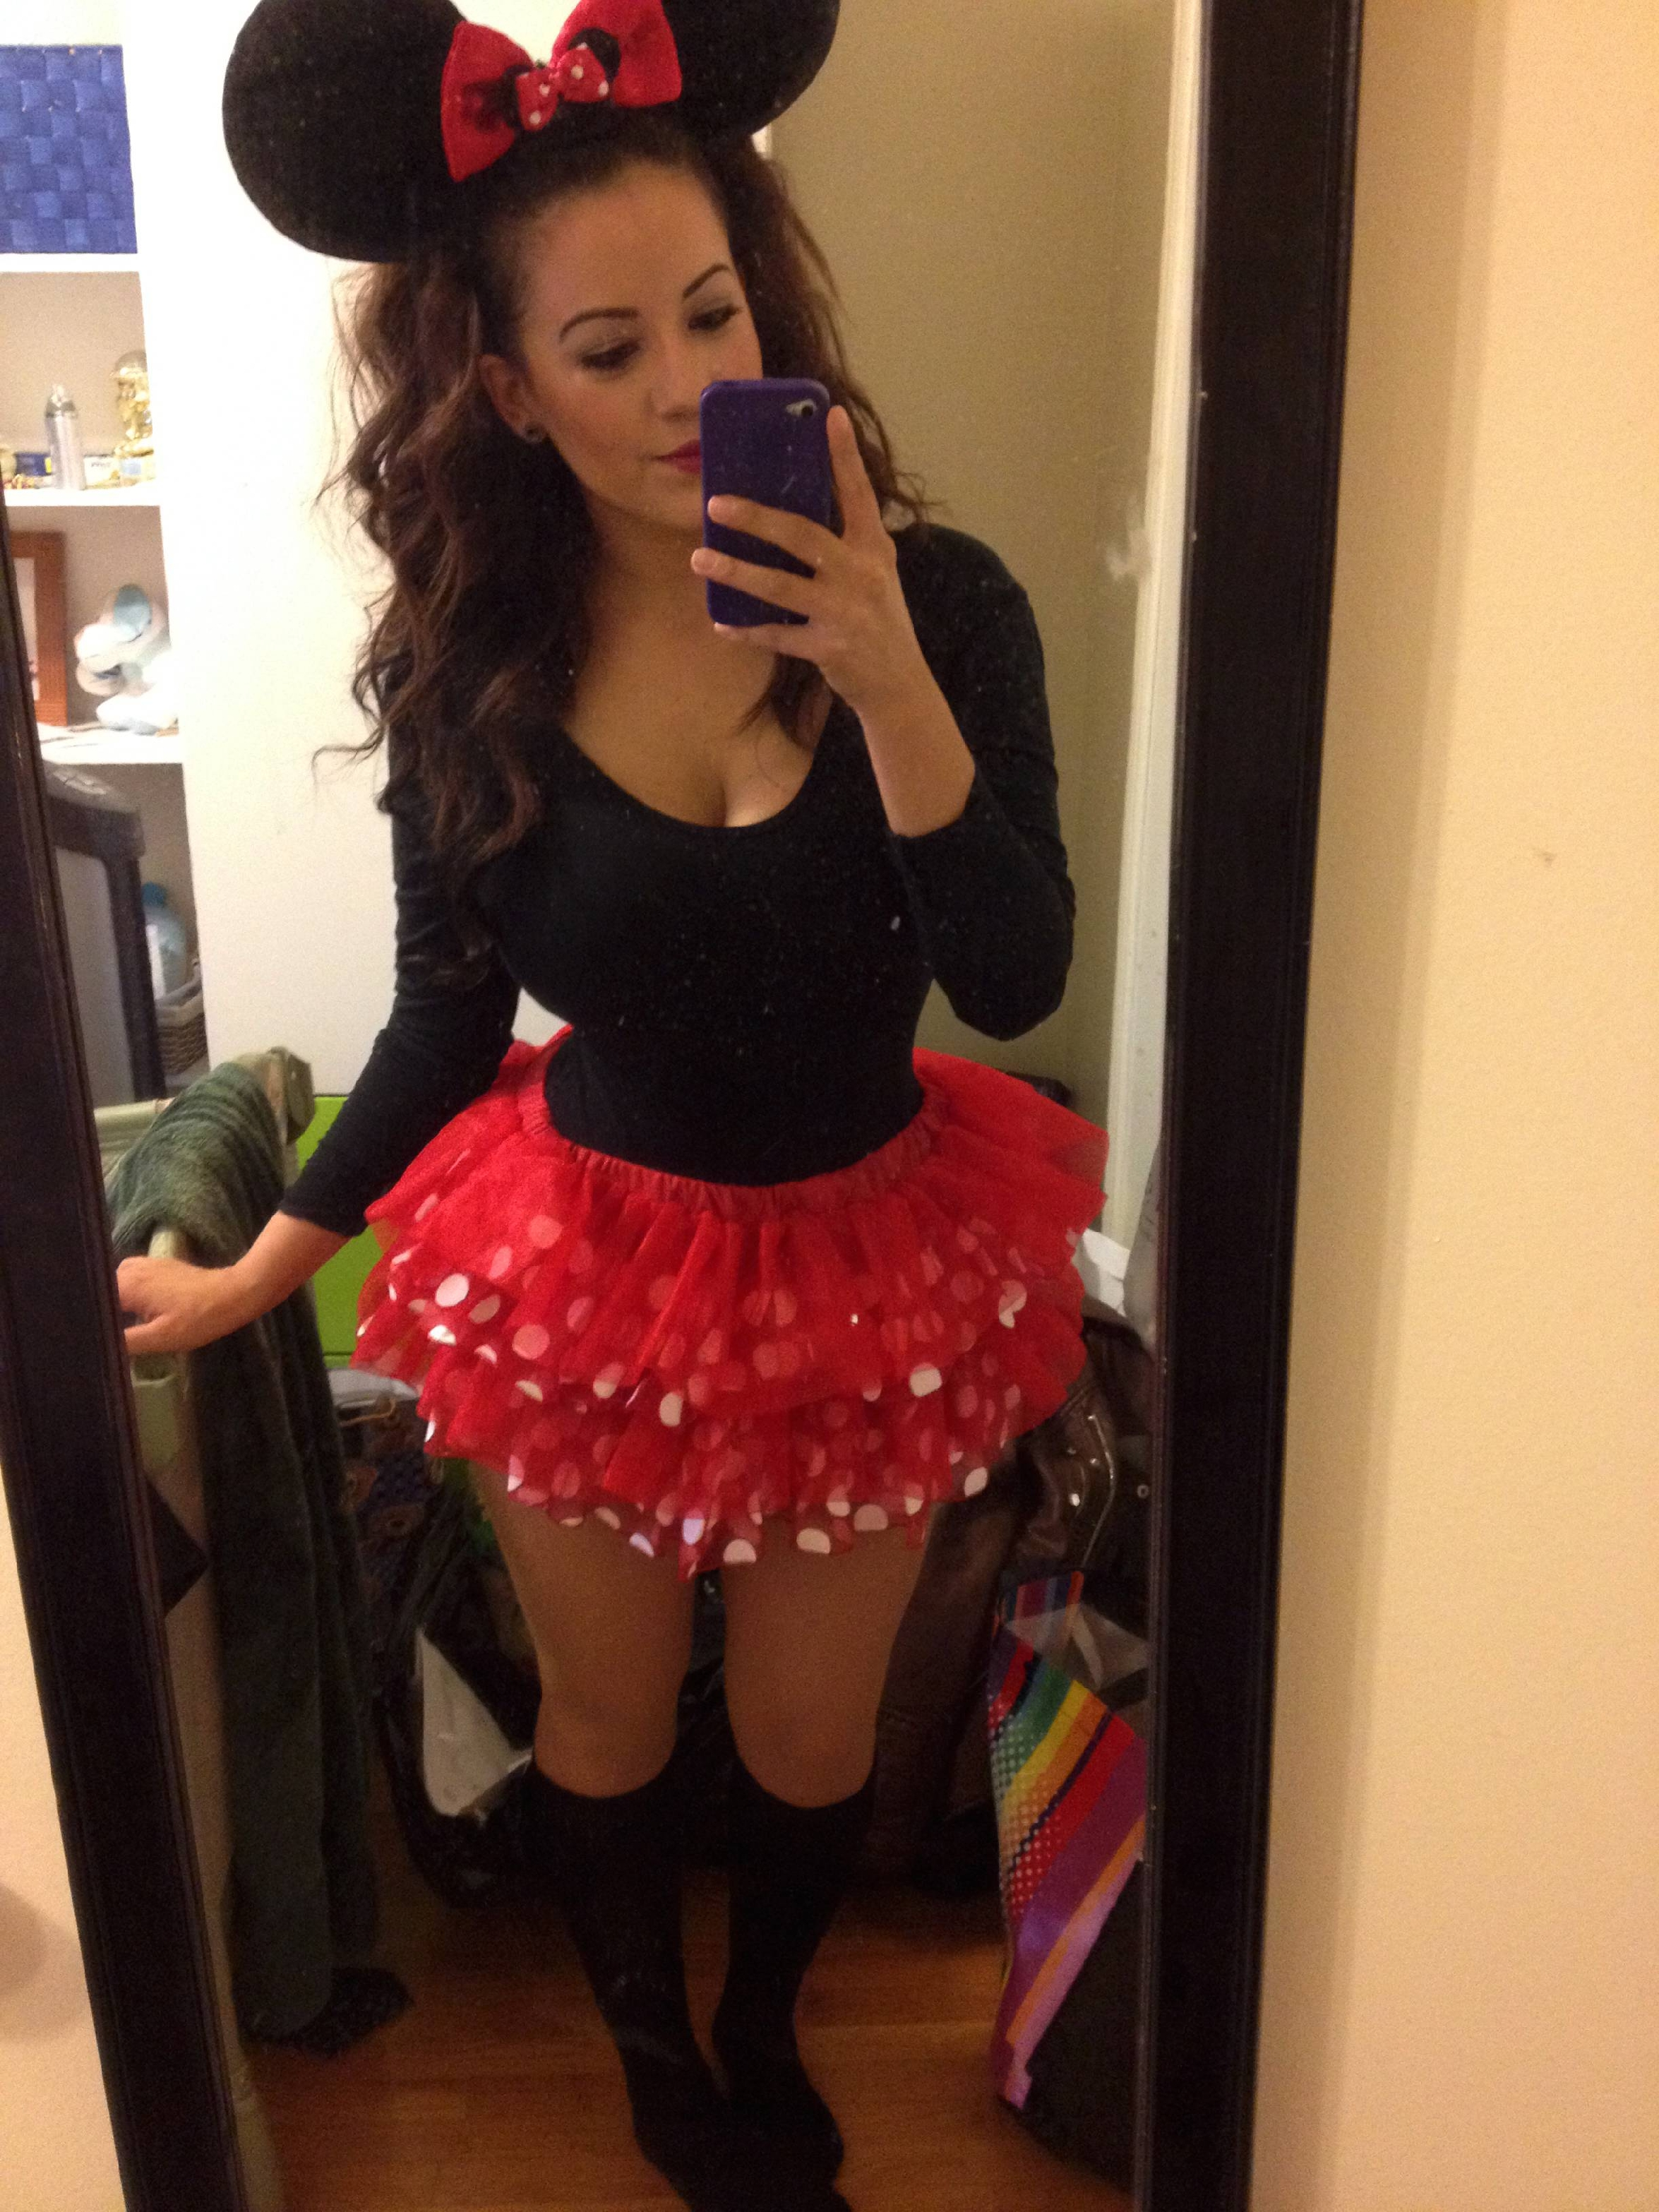 Teen girl slutty halloween costume pic, redhead big feet